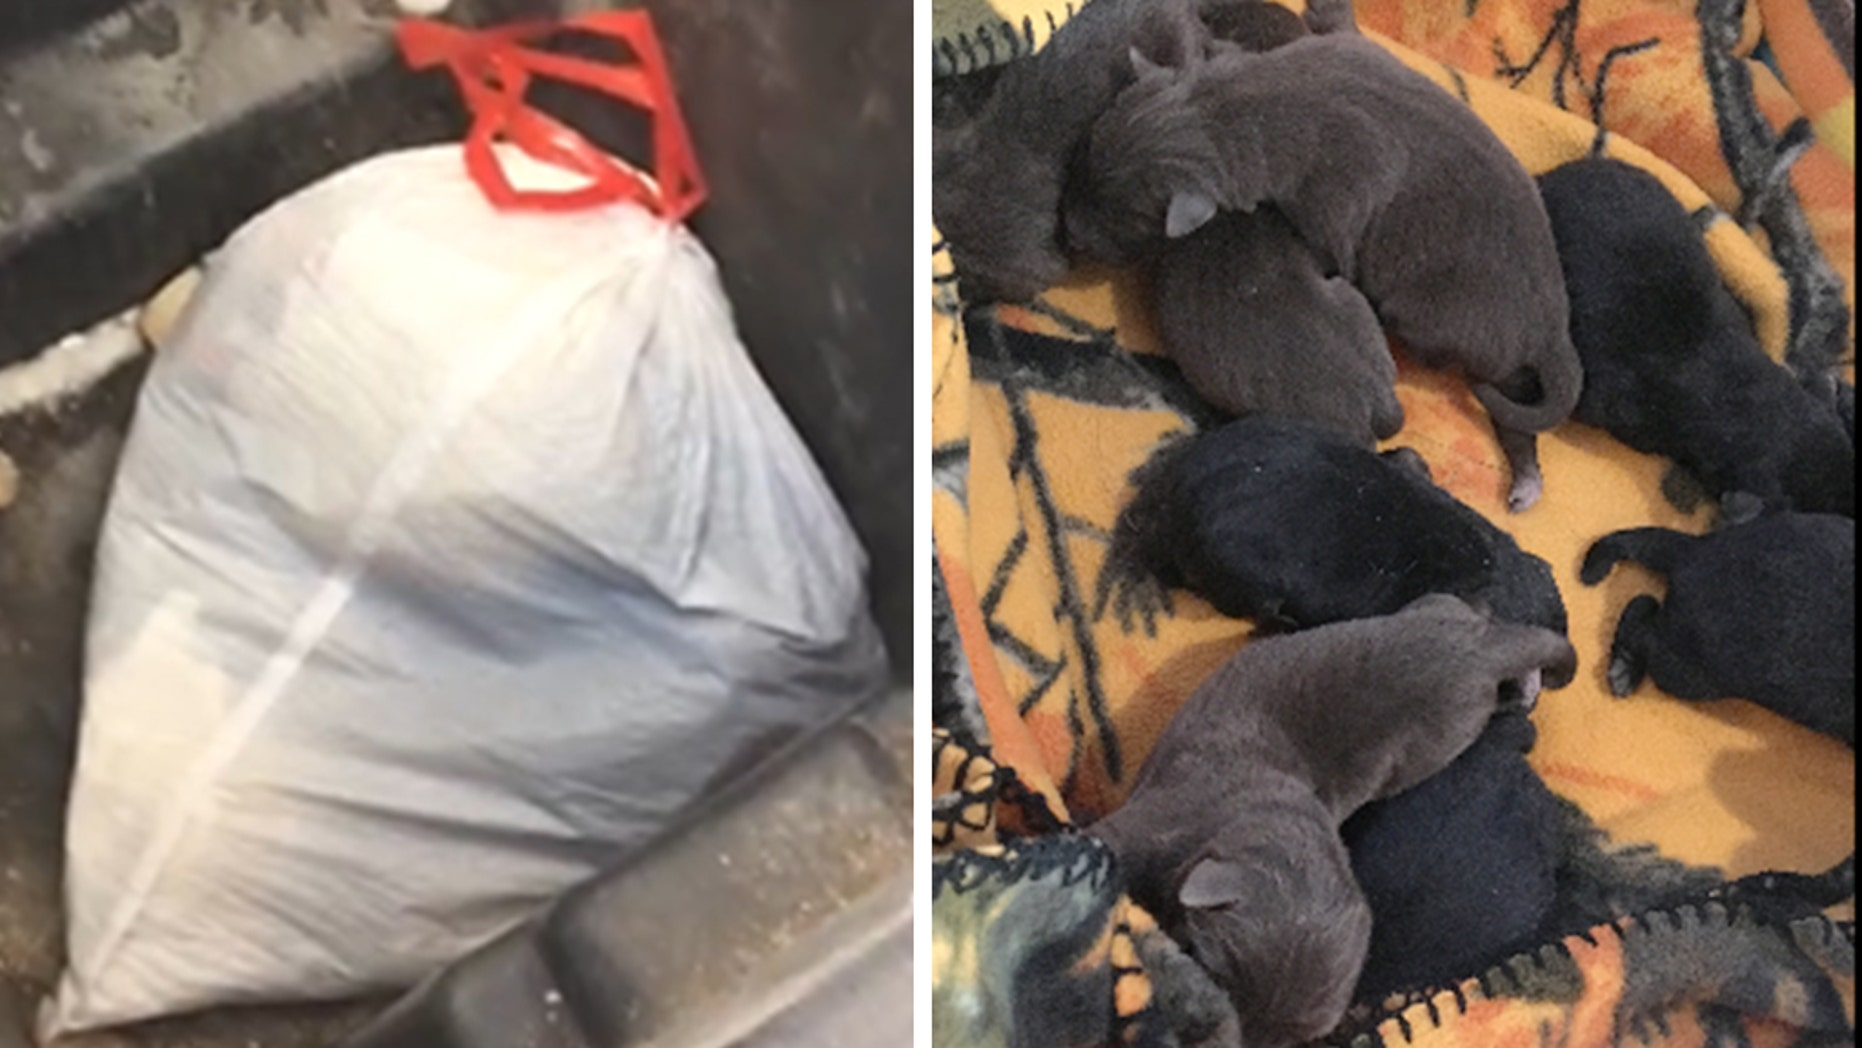 Police in Marshfield, Wisconsin discovered eight newborn puppies that were thrown out with the trash last month.